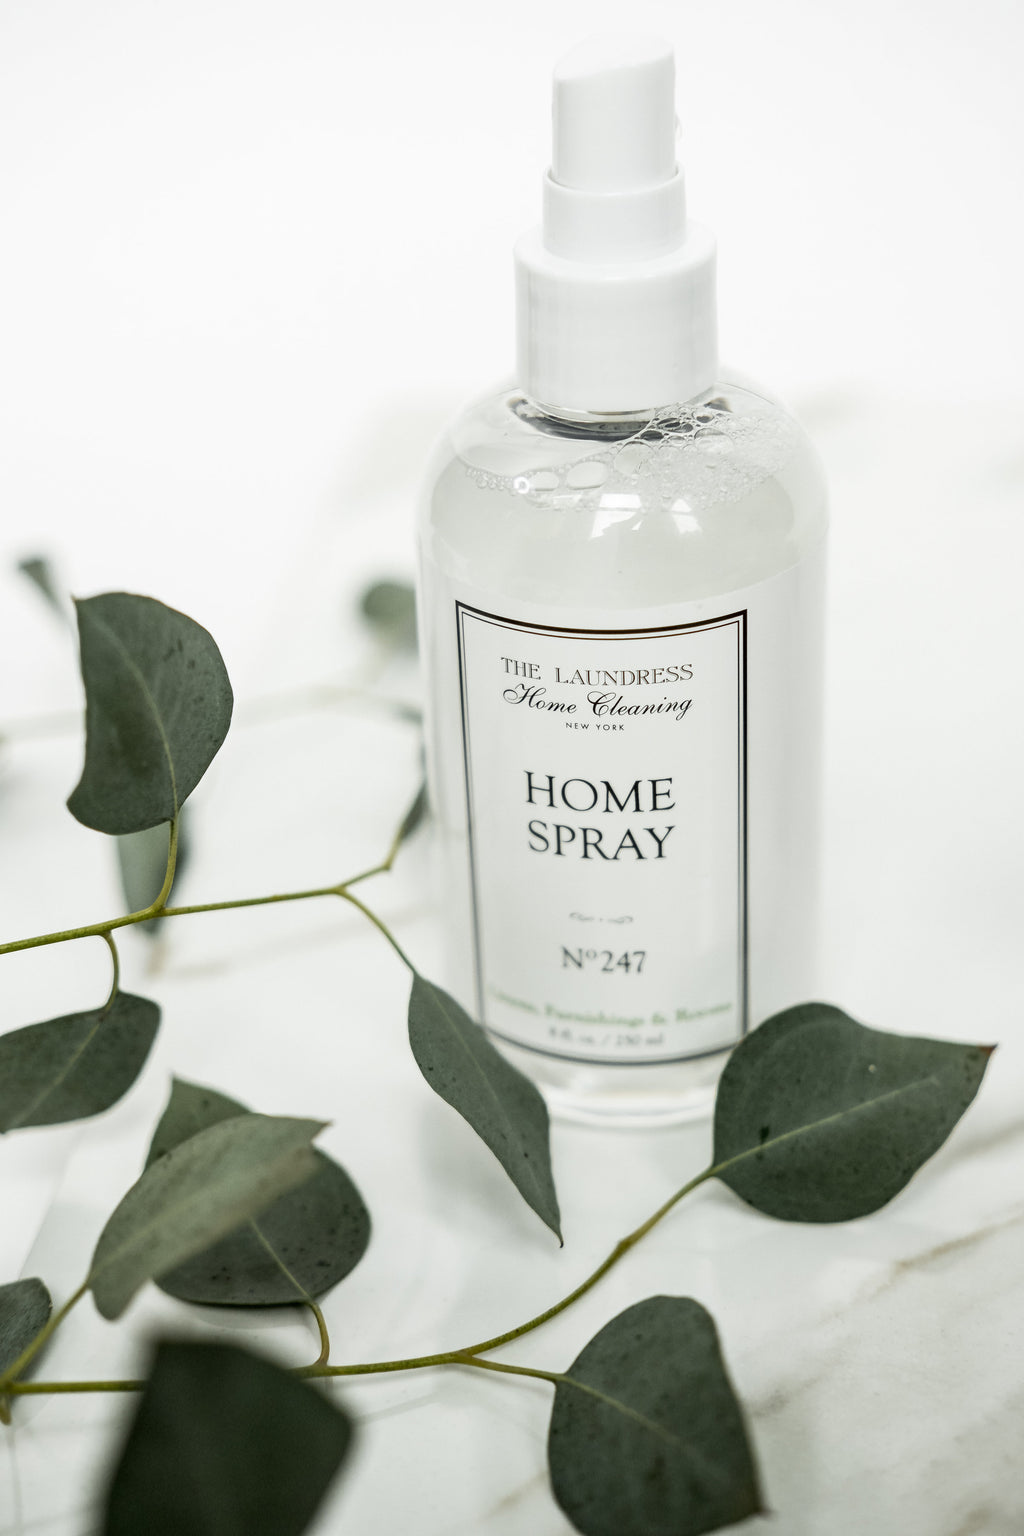 Home Spray